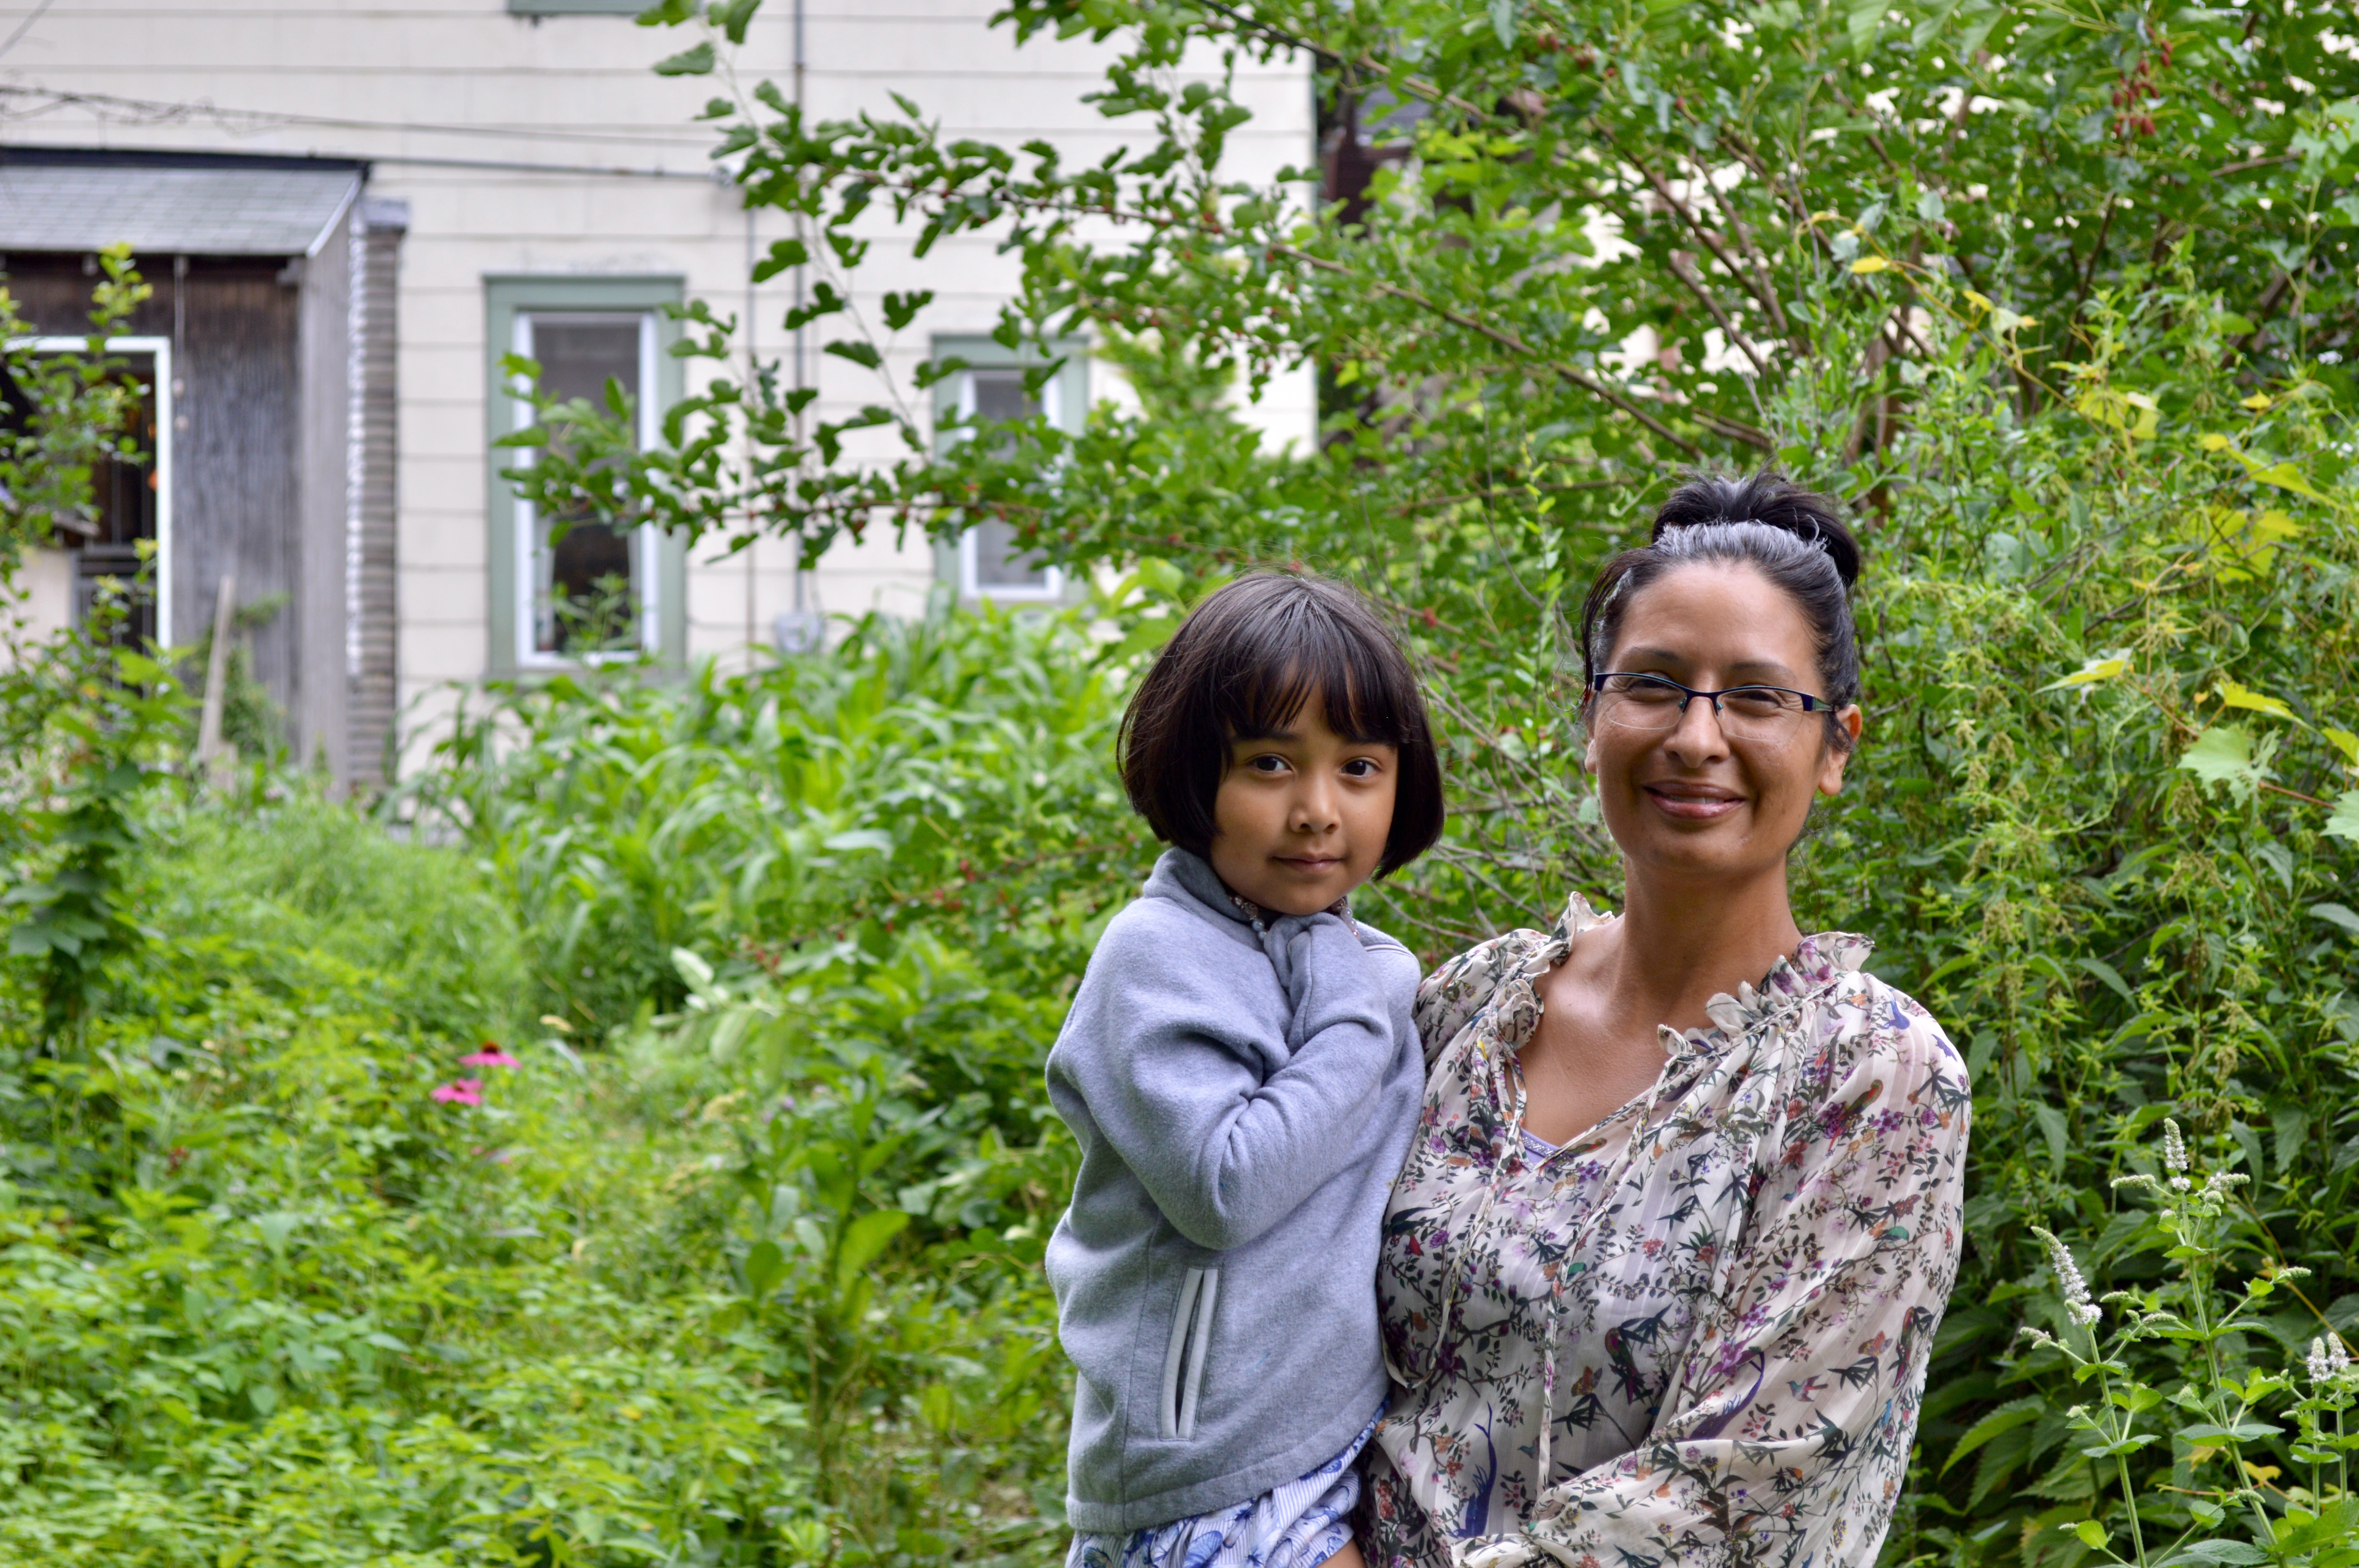 Like her mother before her, Angela Kingsawan has her daughters, including the youngest Elena (pictured here), work alongside her in the garden. Photo by Ana Martinez-Ortiz/NNS.